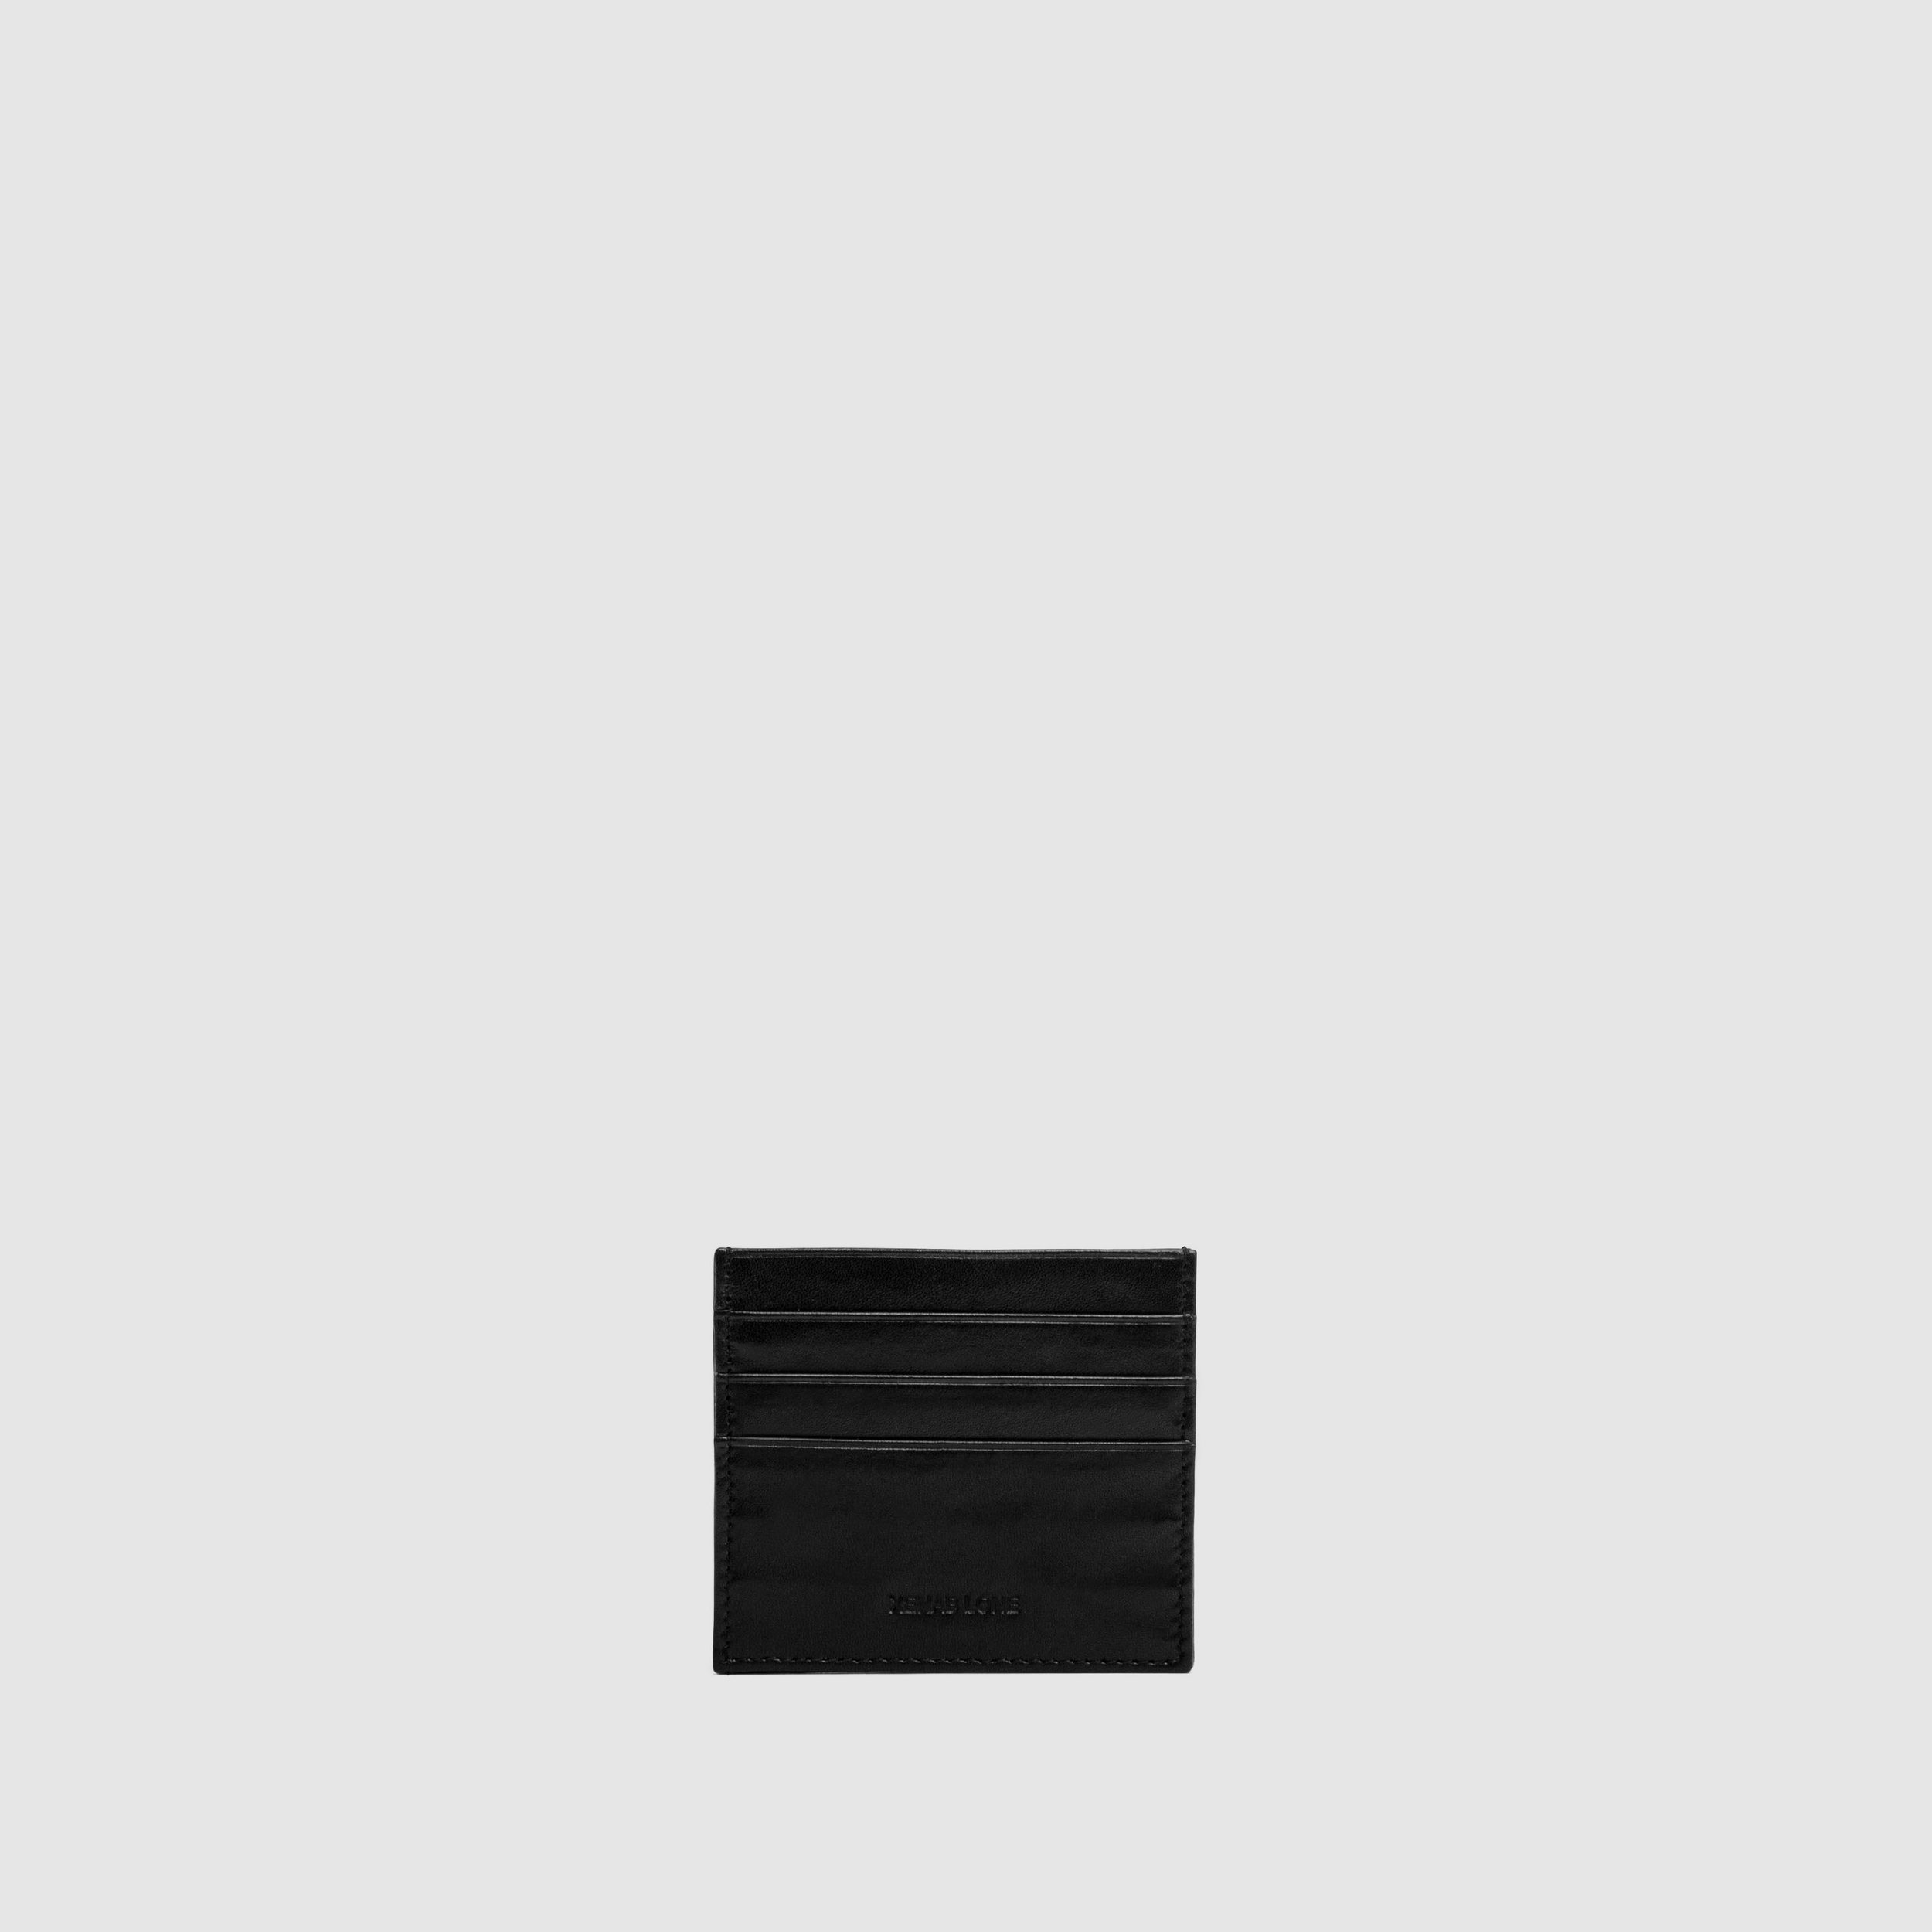 Wallets&Pouches_0002s_0000s_0000_Layer 28.jpg